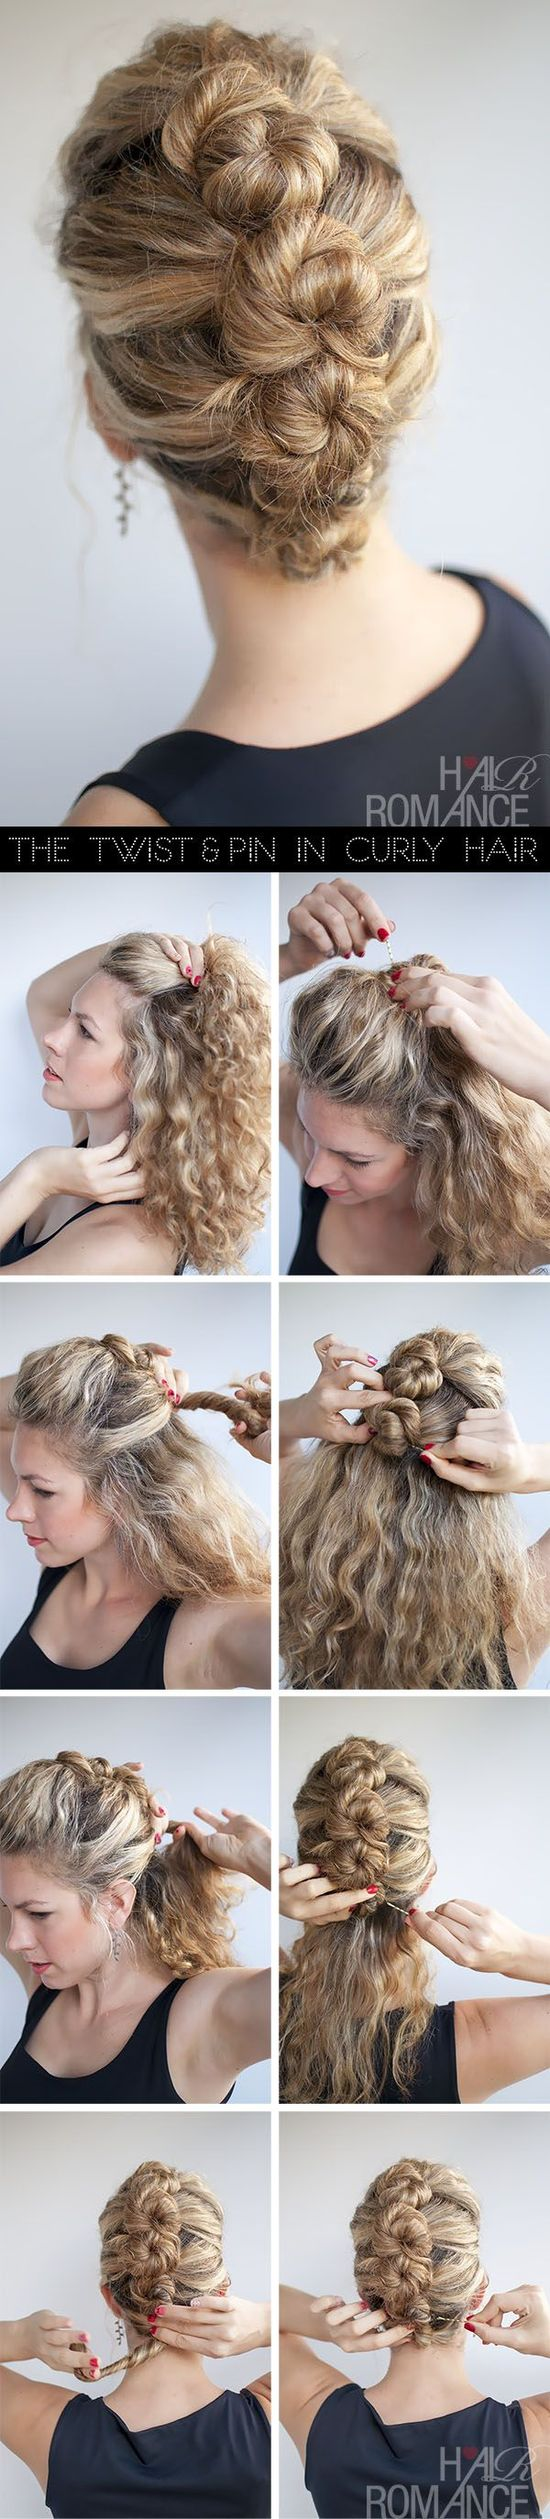 - The French Twist and Pin in curly hair